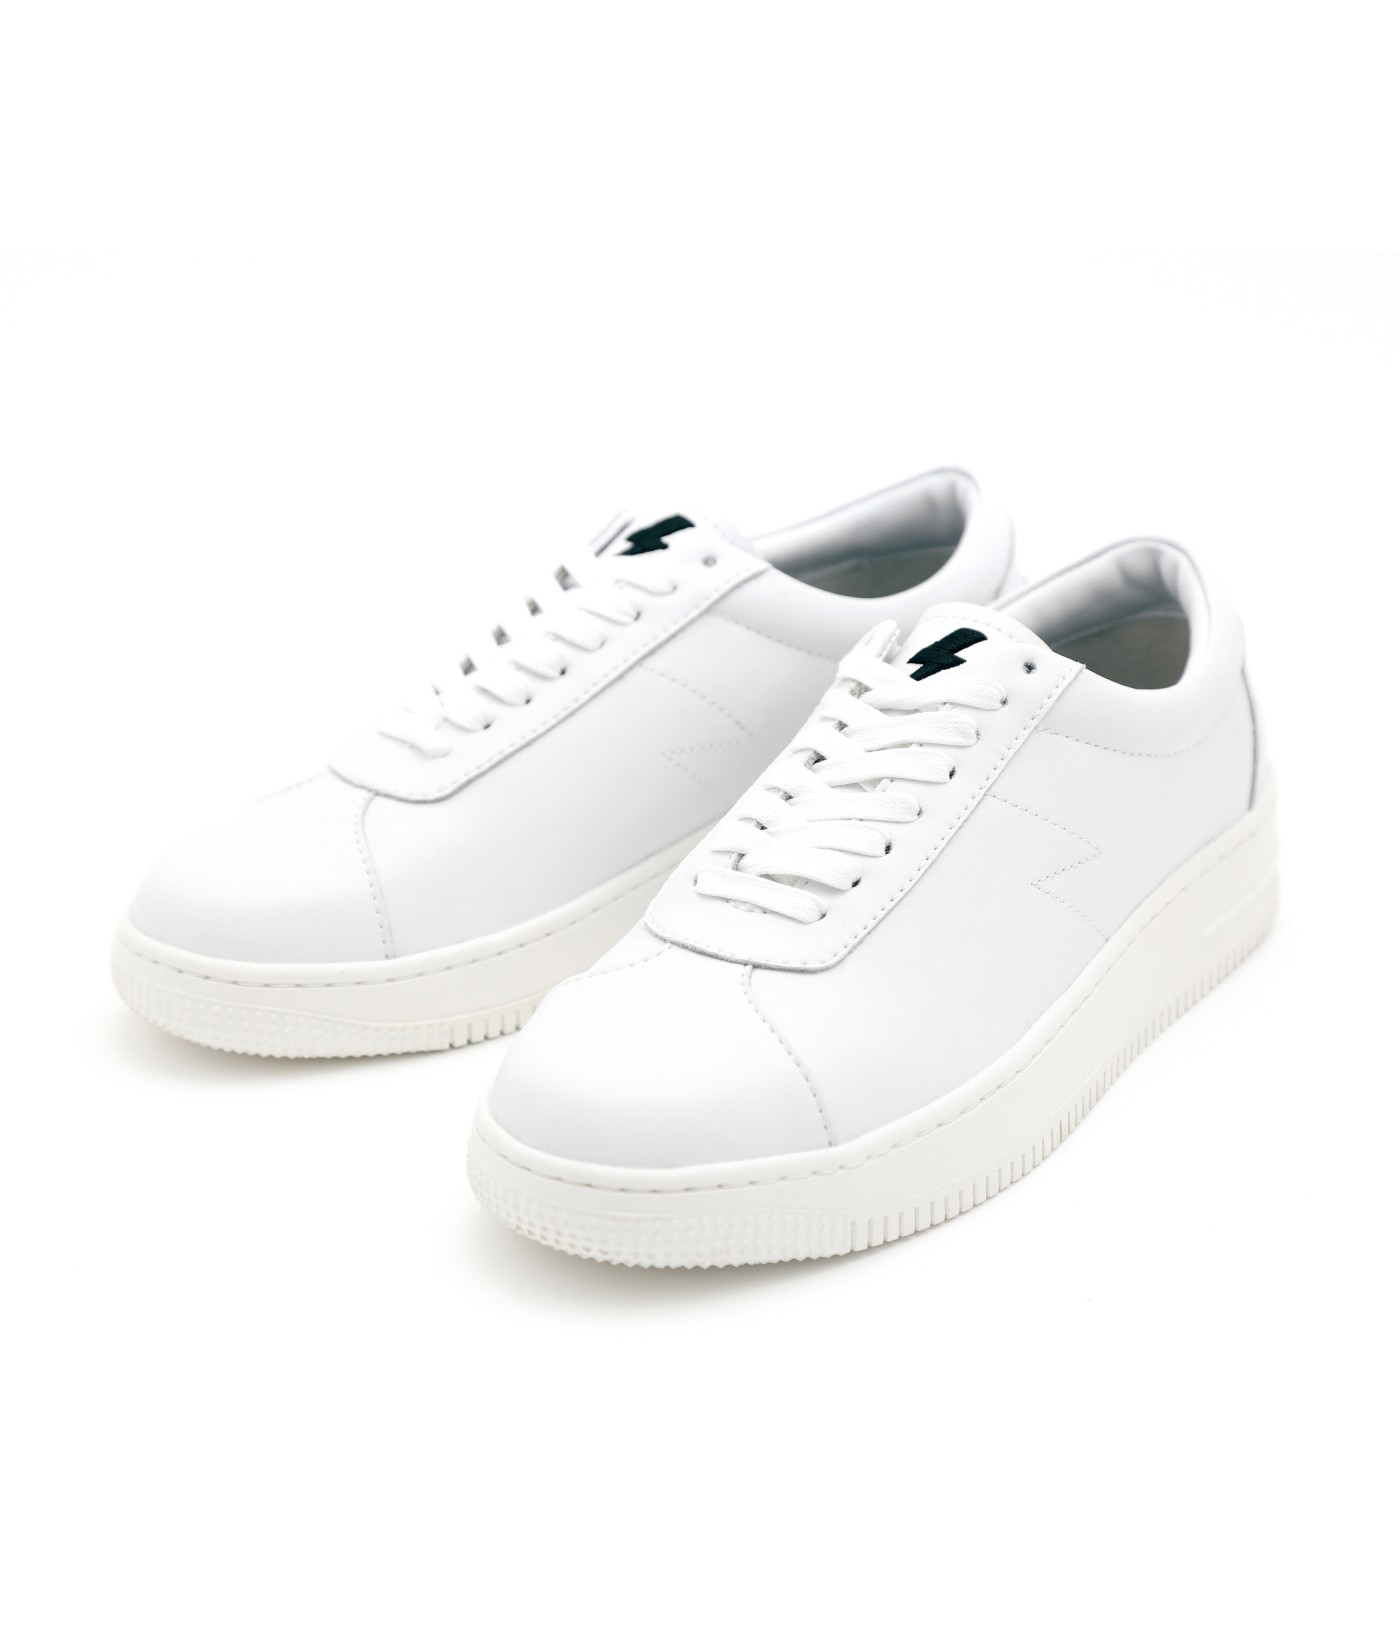 F.E.A.R URBAN STREET LOW SNEAKER(WHITE)